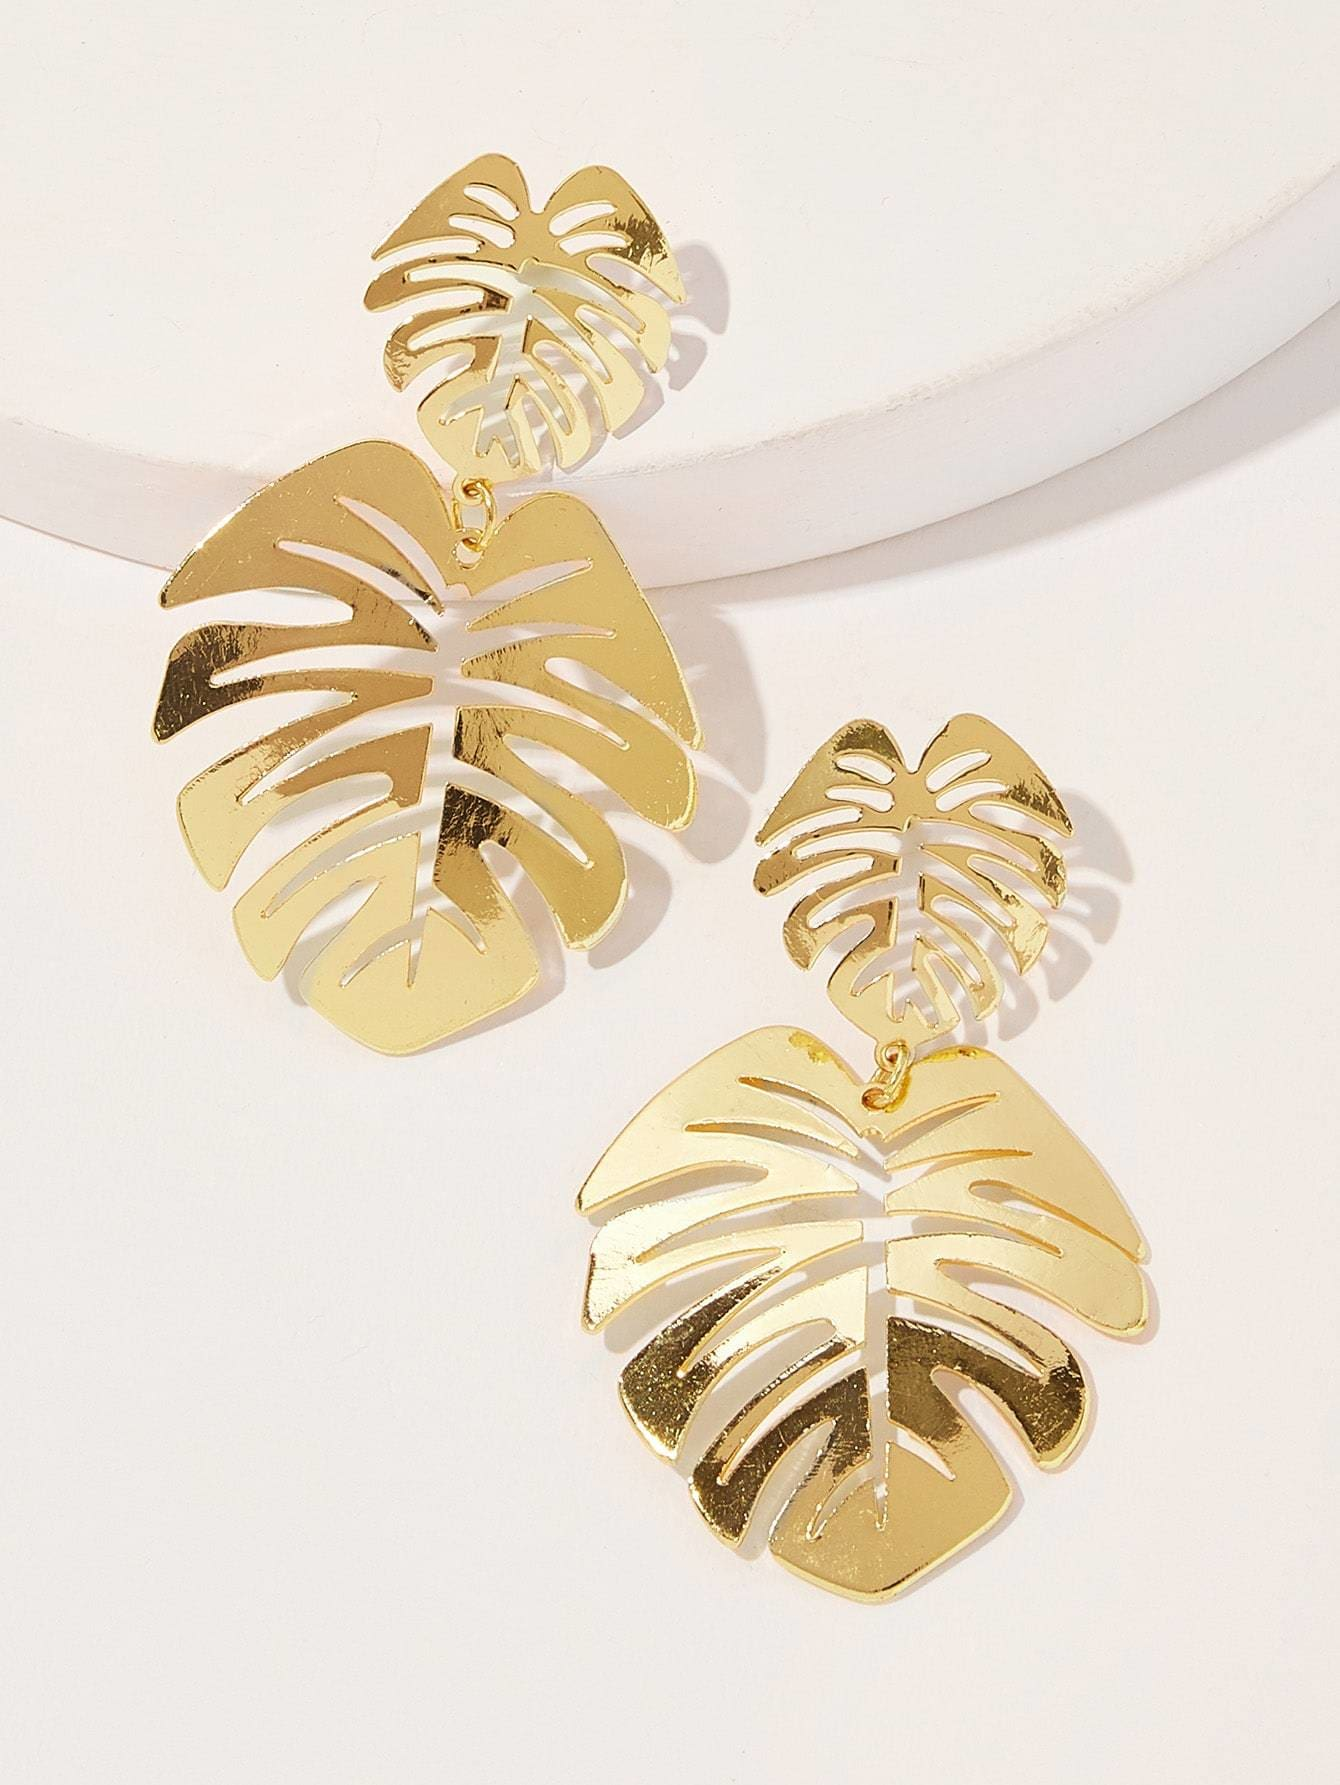 Double Leaf Shaped Drop Earrings 1pair - Earrings